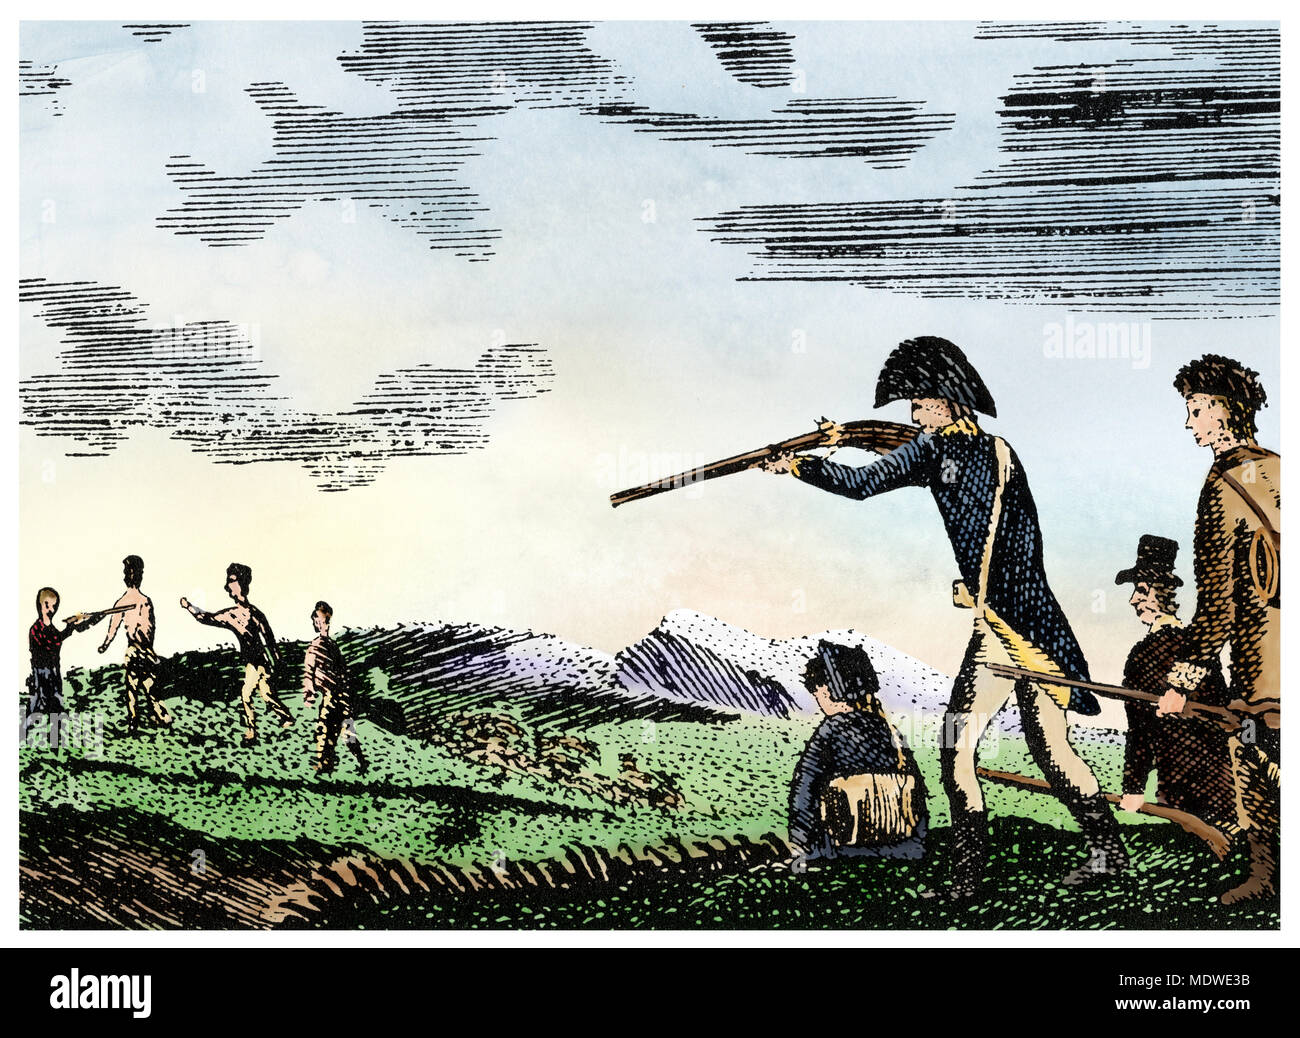 Meriwether Lewis shoots a Native American for disobedience, Corps of Discovery expedition. Digitally colored Patrick Goss woodcut - Stock Image